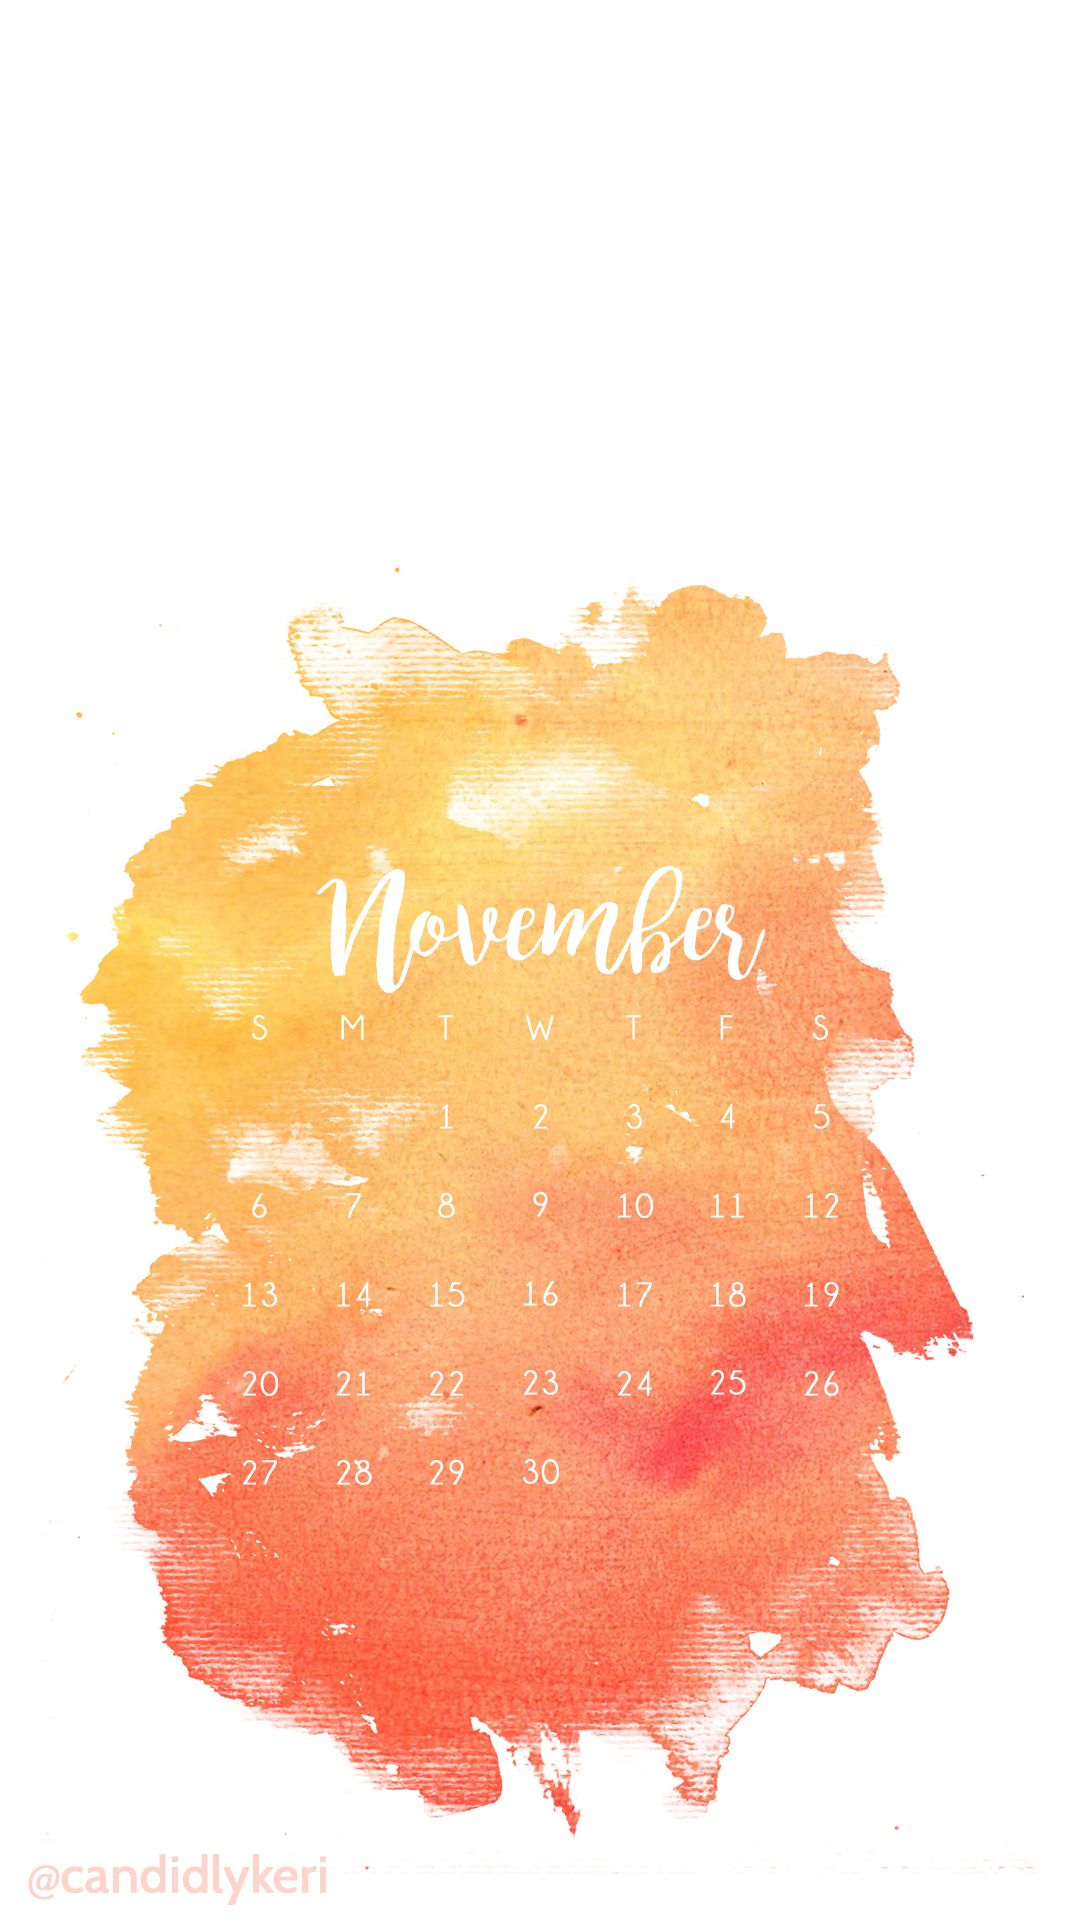 November iphone wallpaper tumblr - Orange Red Yellow Fall Colors Watercolor November Calendar 2016 Wallpaper You Can Download For Free On